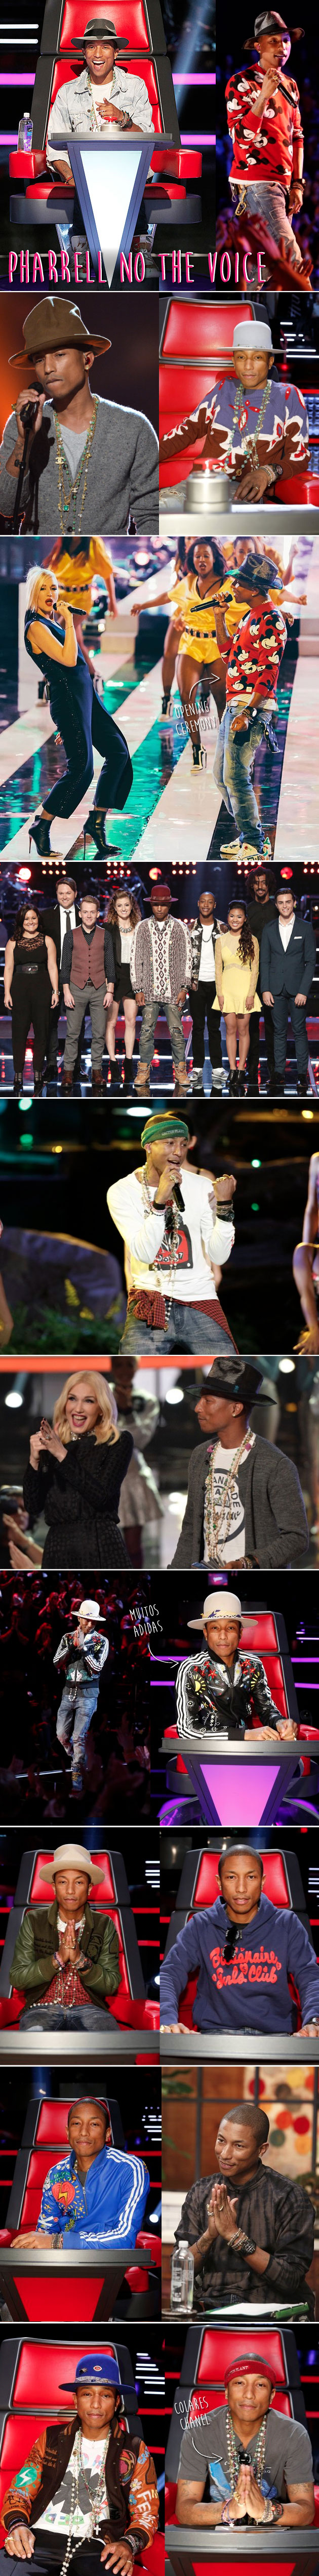 pharrell-williams-the-voice-no-sony-estilo-jaquetas-adidas-colares-chanel-figurino-canal-sony-